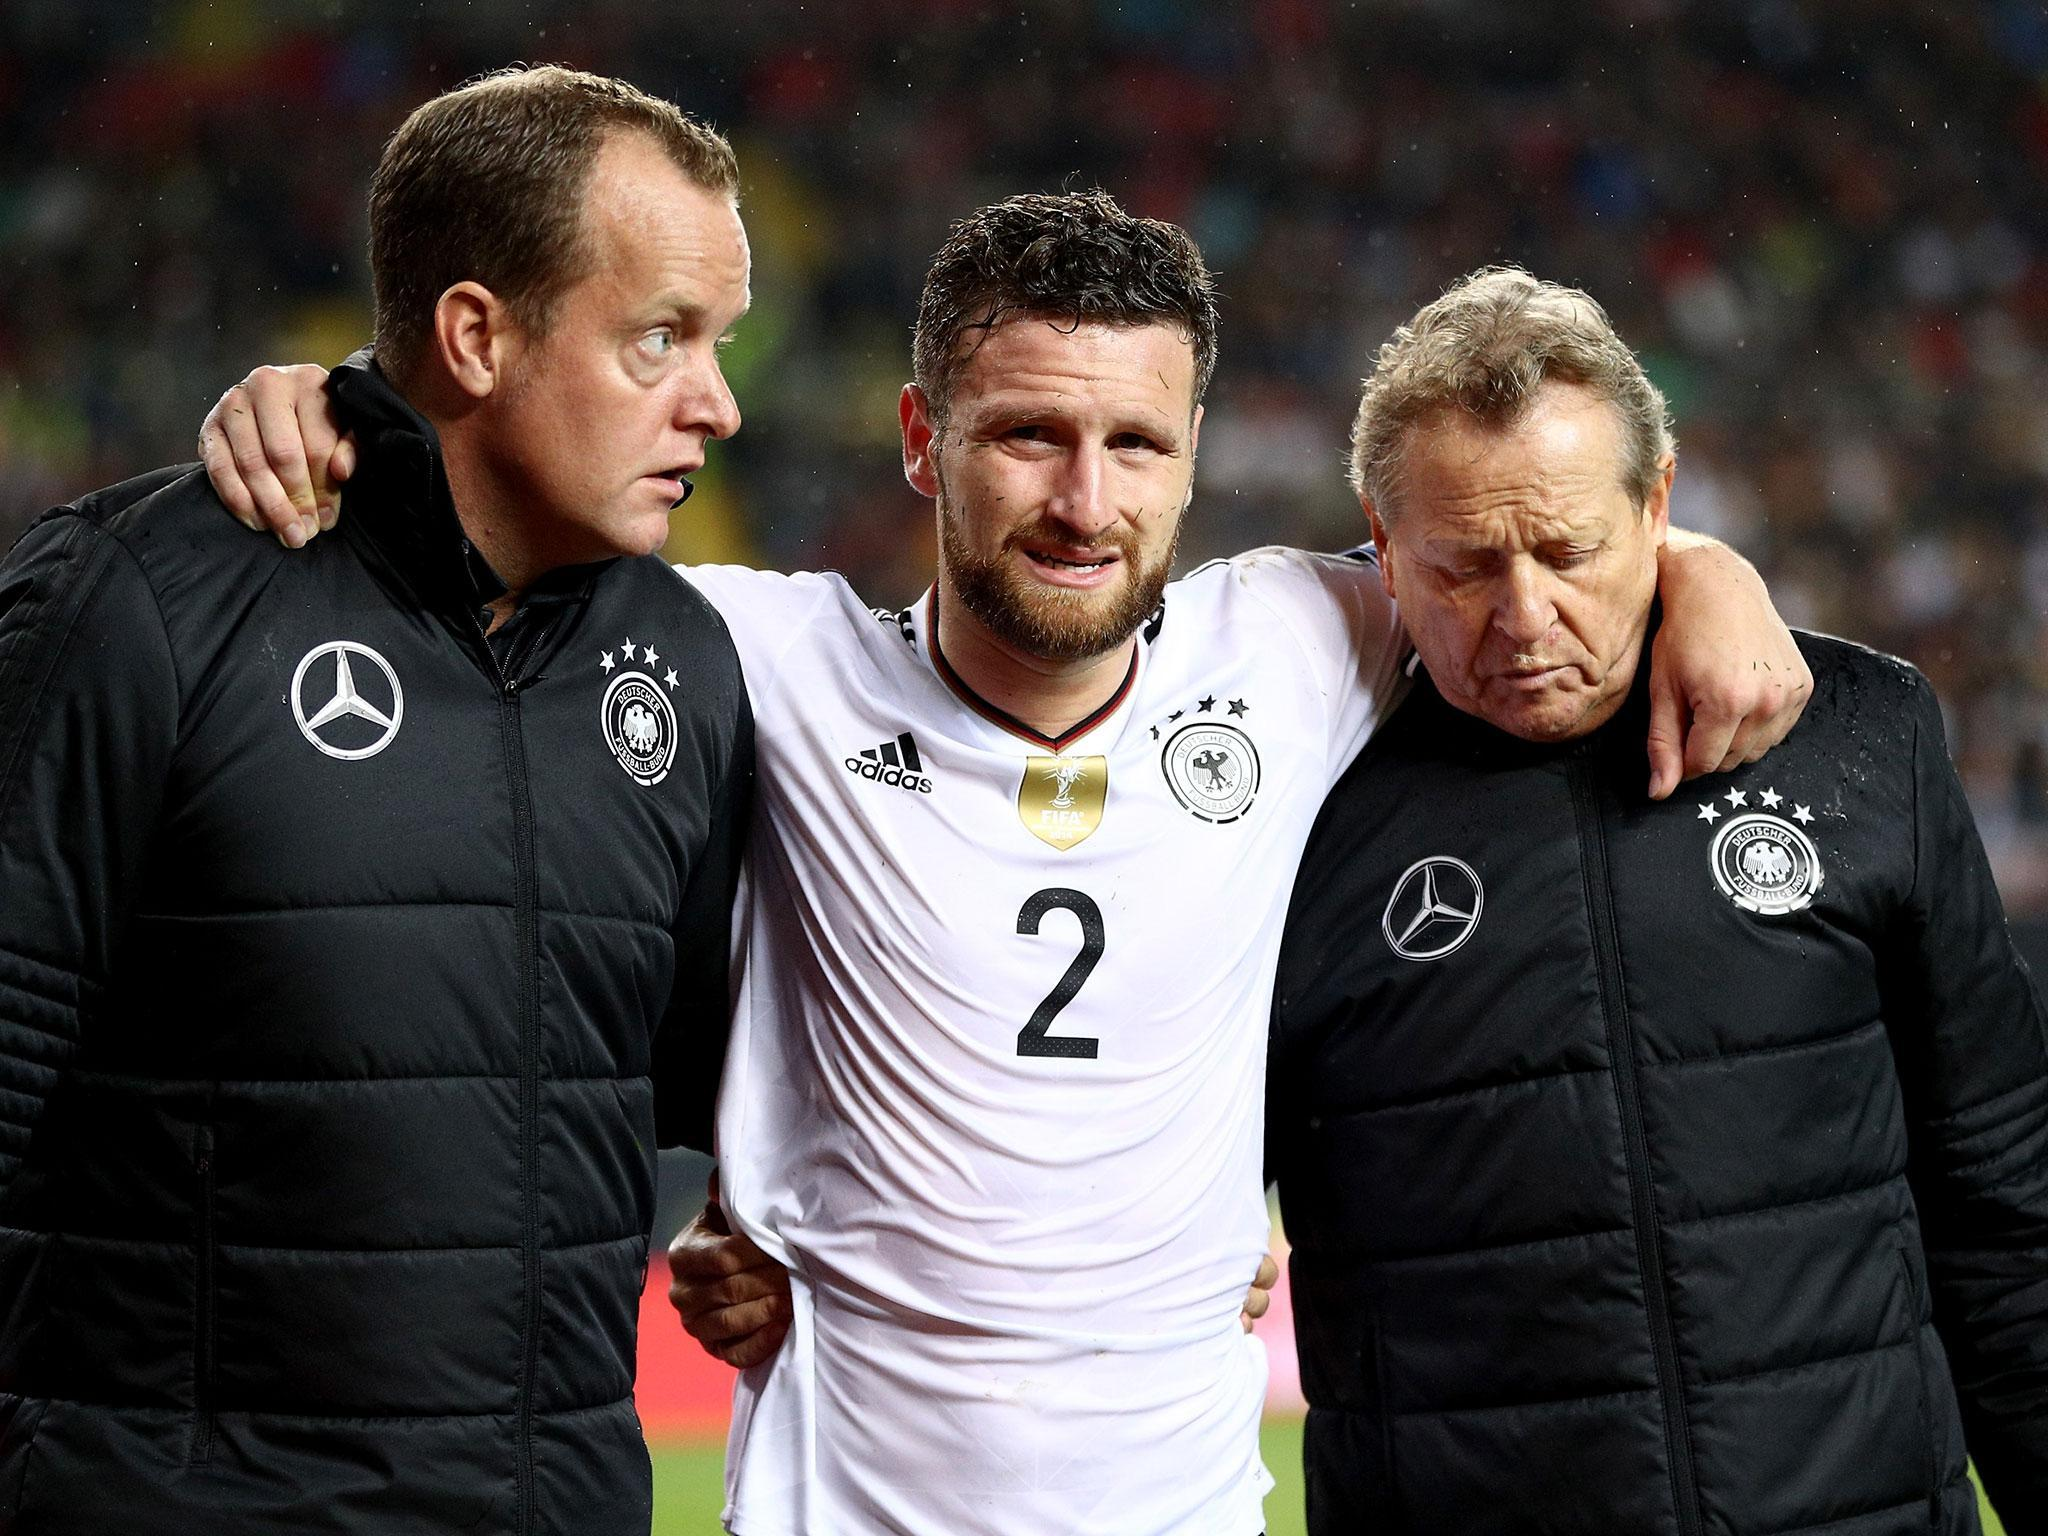 Arsenal handed injury blow with Shkodran Mustafi ruled out for a